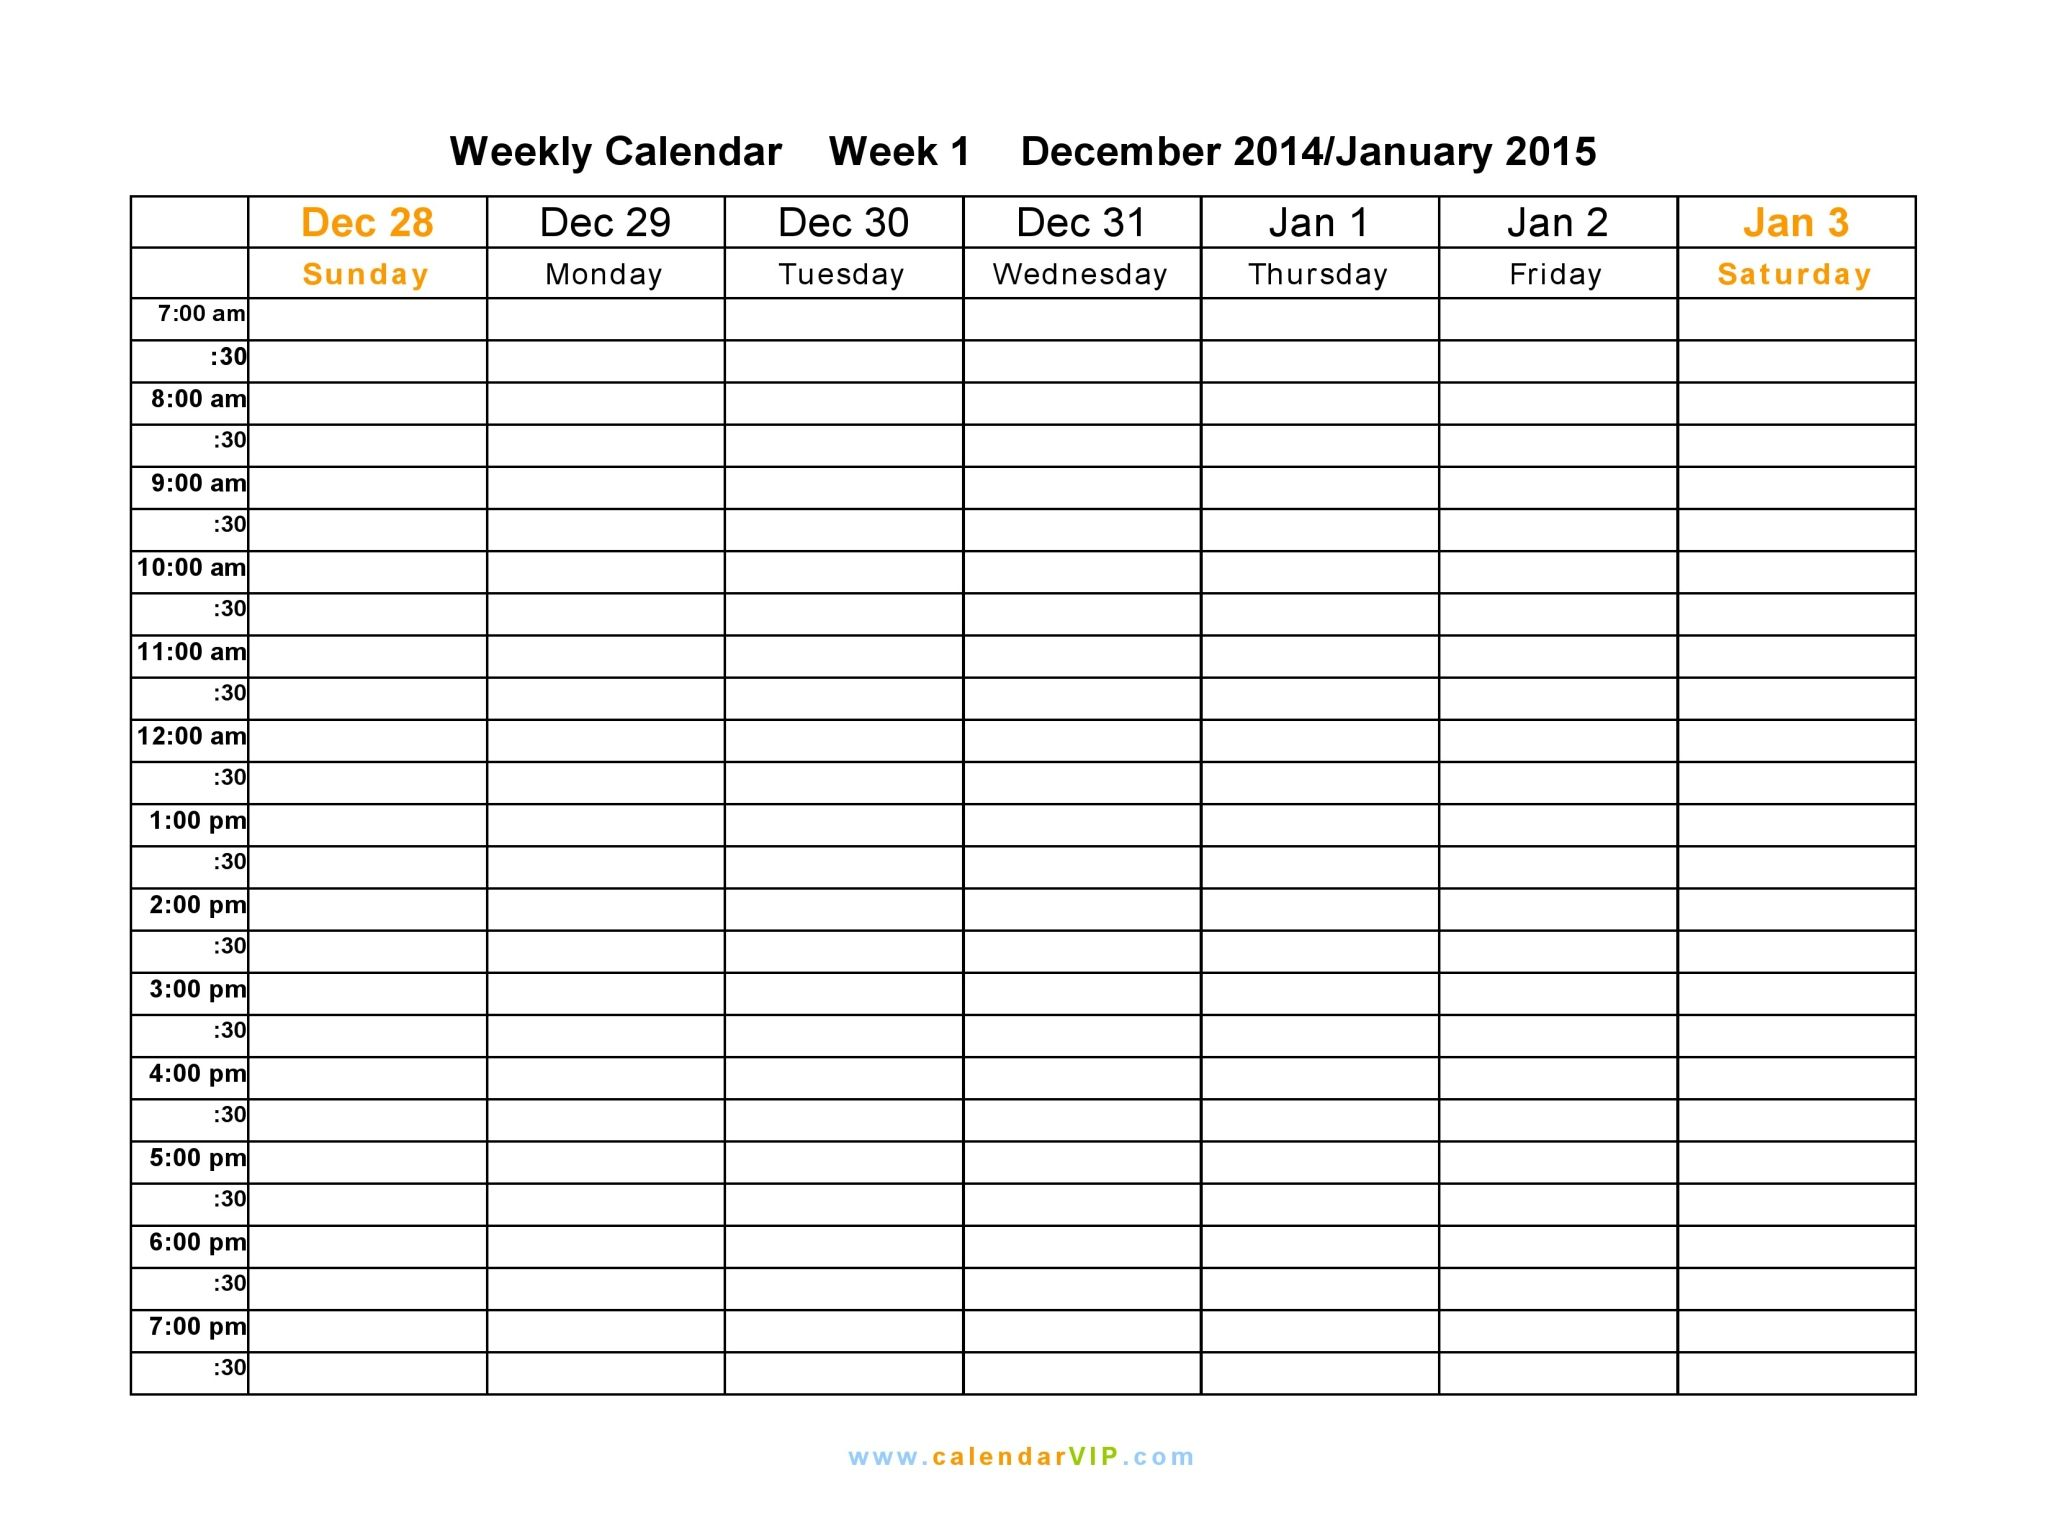 Weekly Calendar With Room For Notes – Weekly Calendar | Daily Form ...